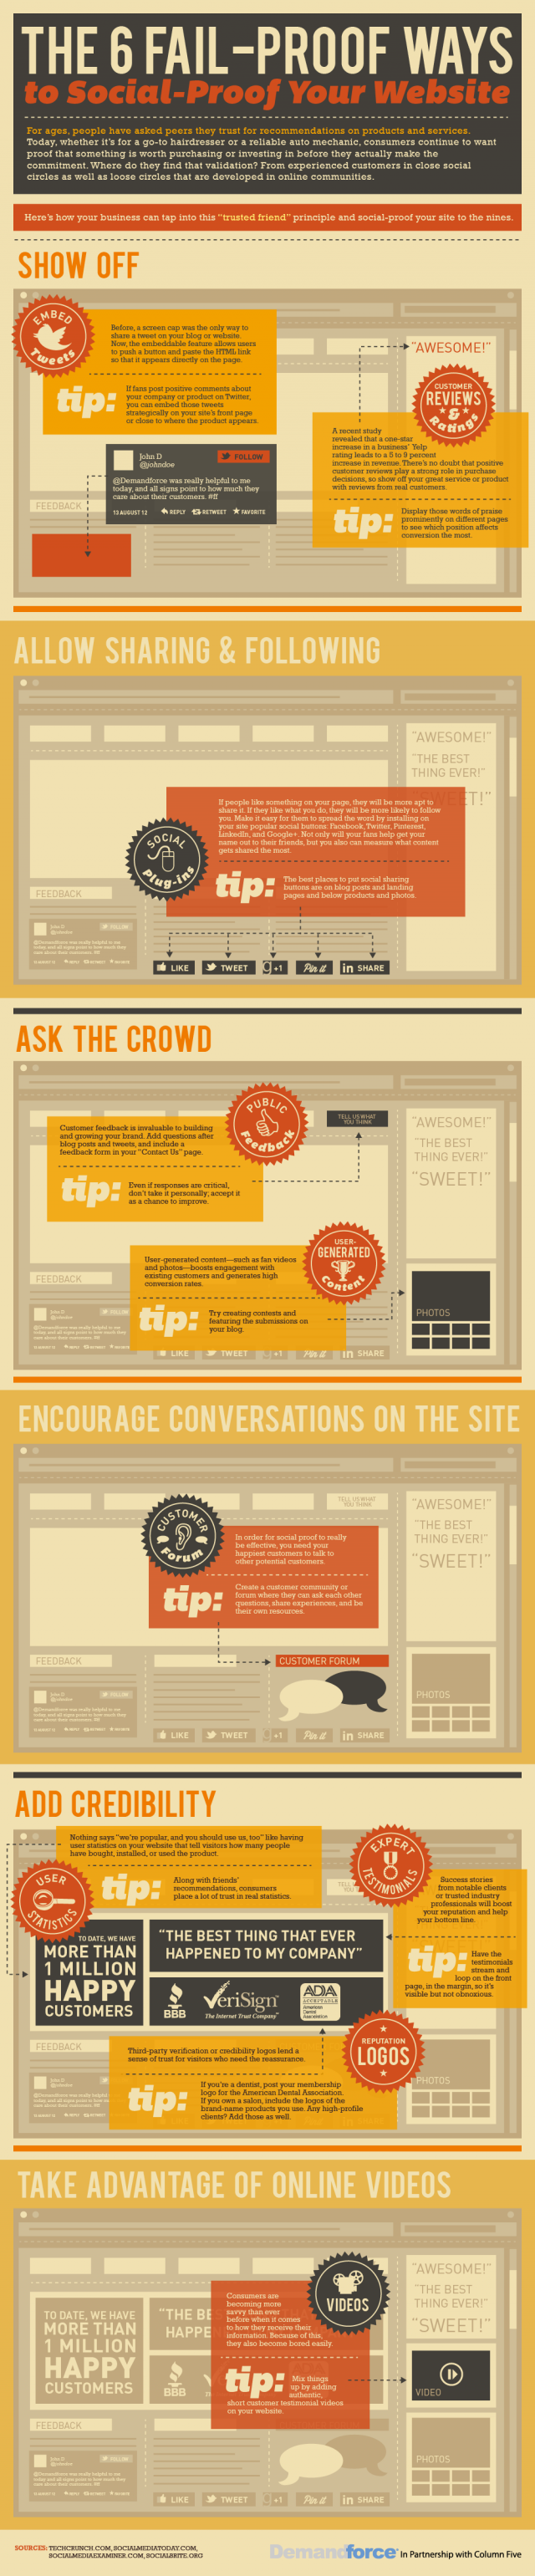 Infographic: building trust with social tools on your site